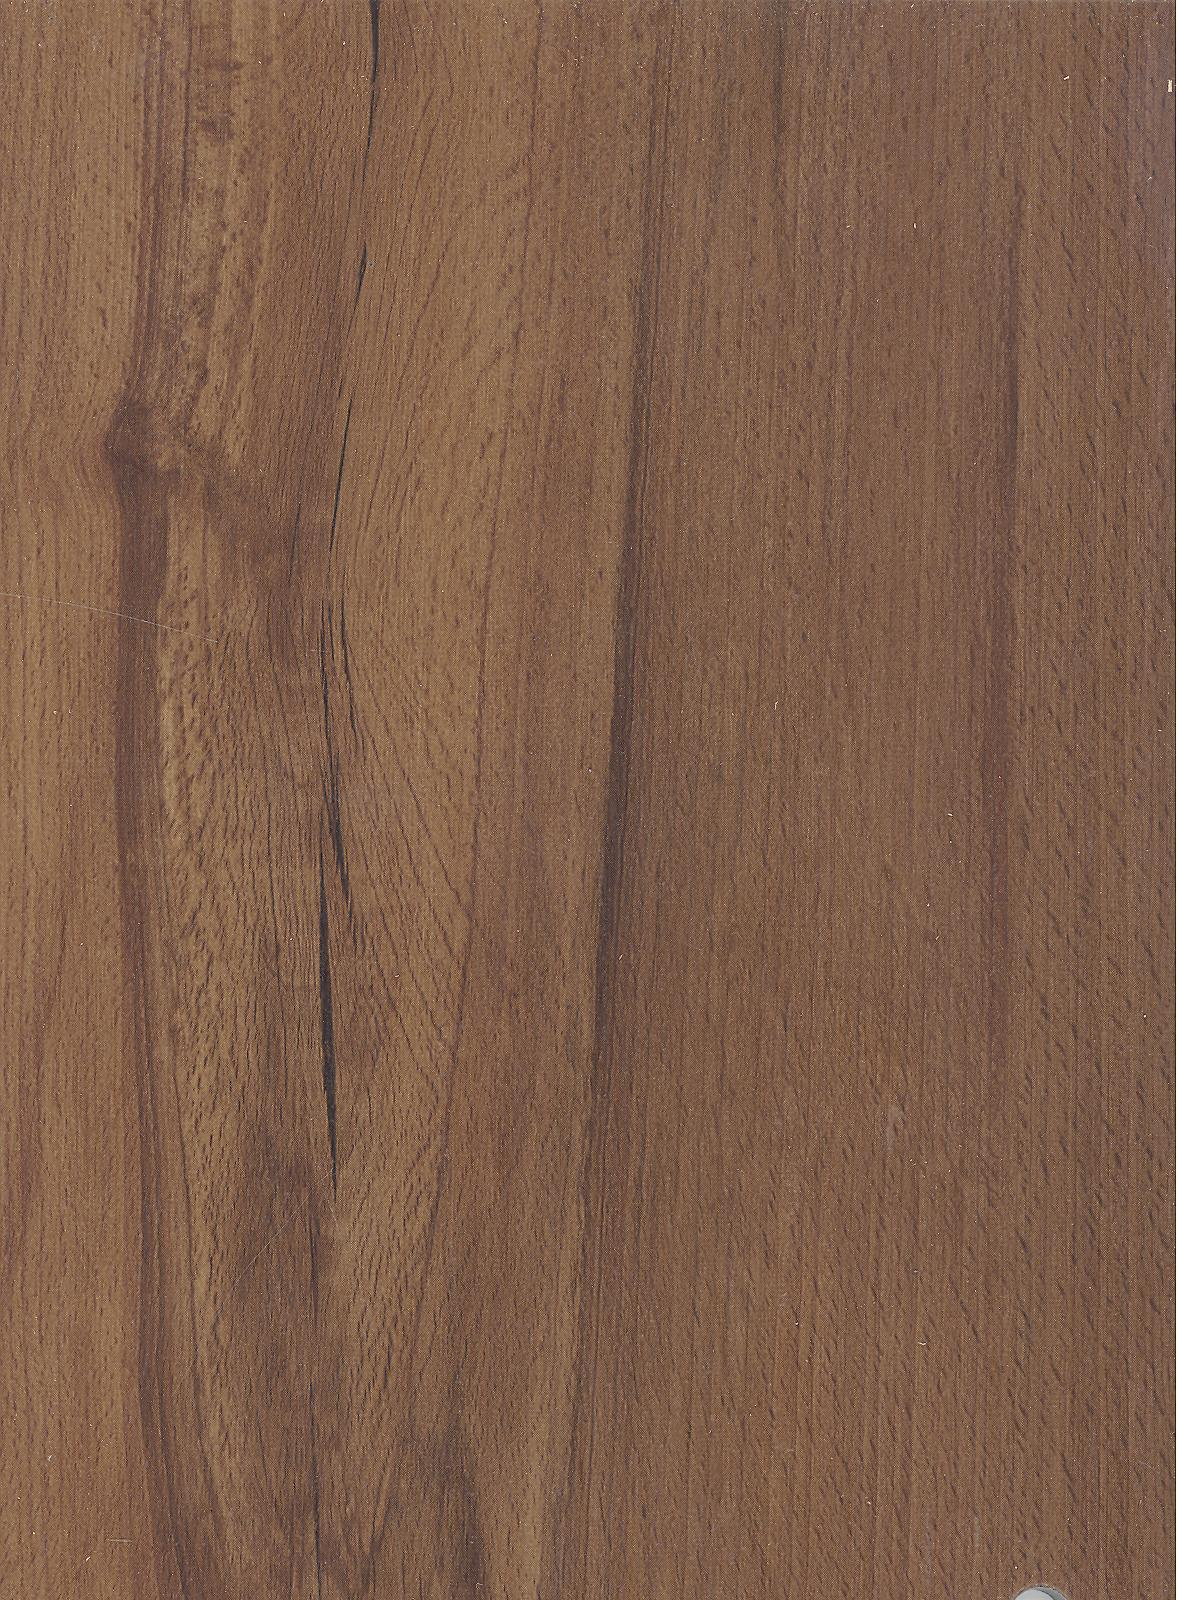 Congoleum lvt carefree gunstock 6 x 36 luxury vinyl for Mohawk vinyl flooring